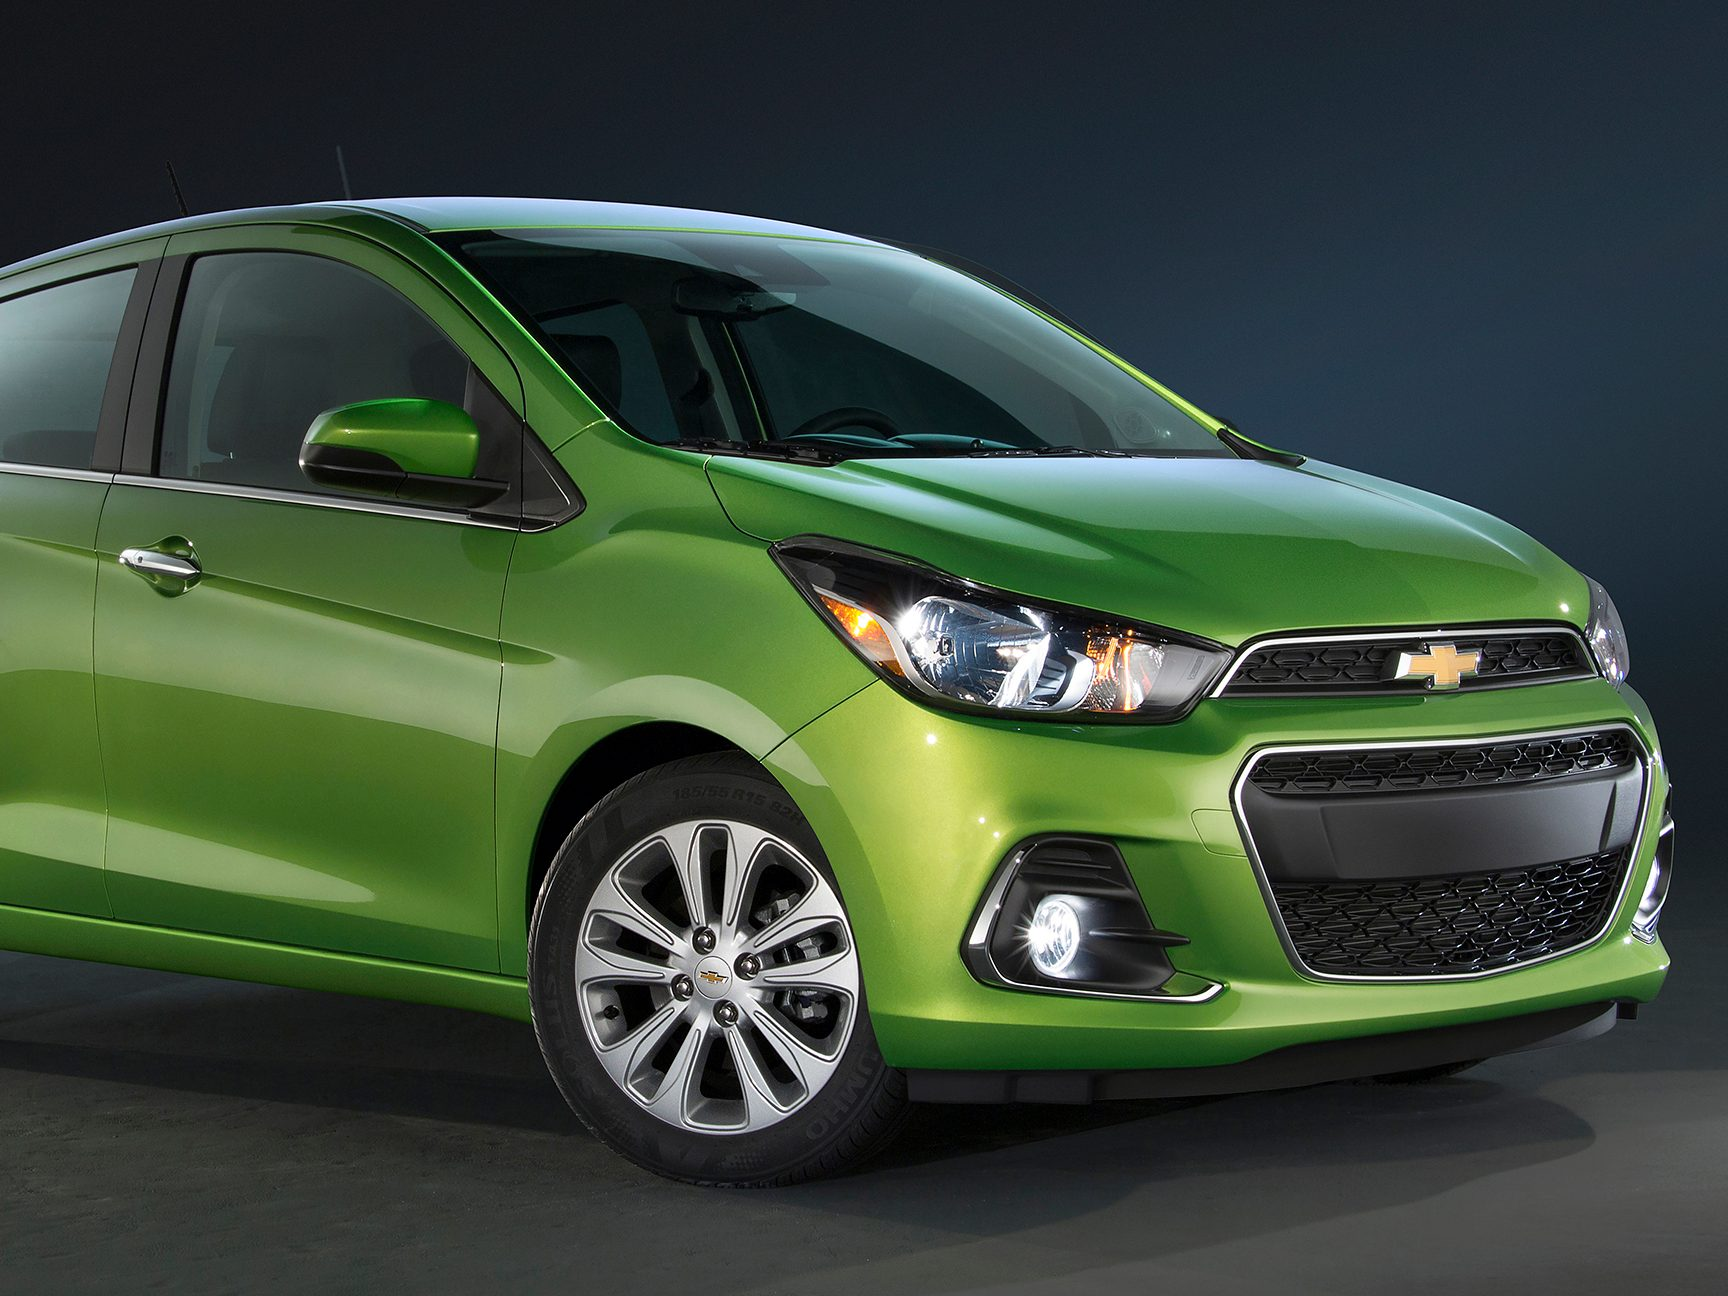 2. The 2016 Chevrolet Spark has a more powerful engine.